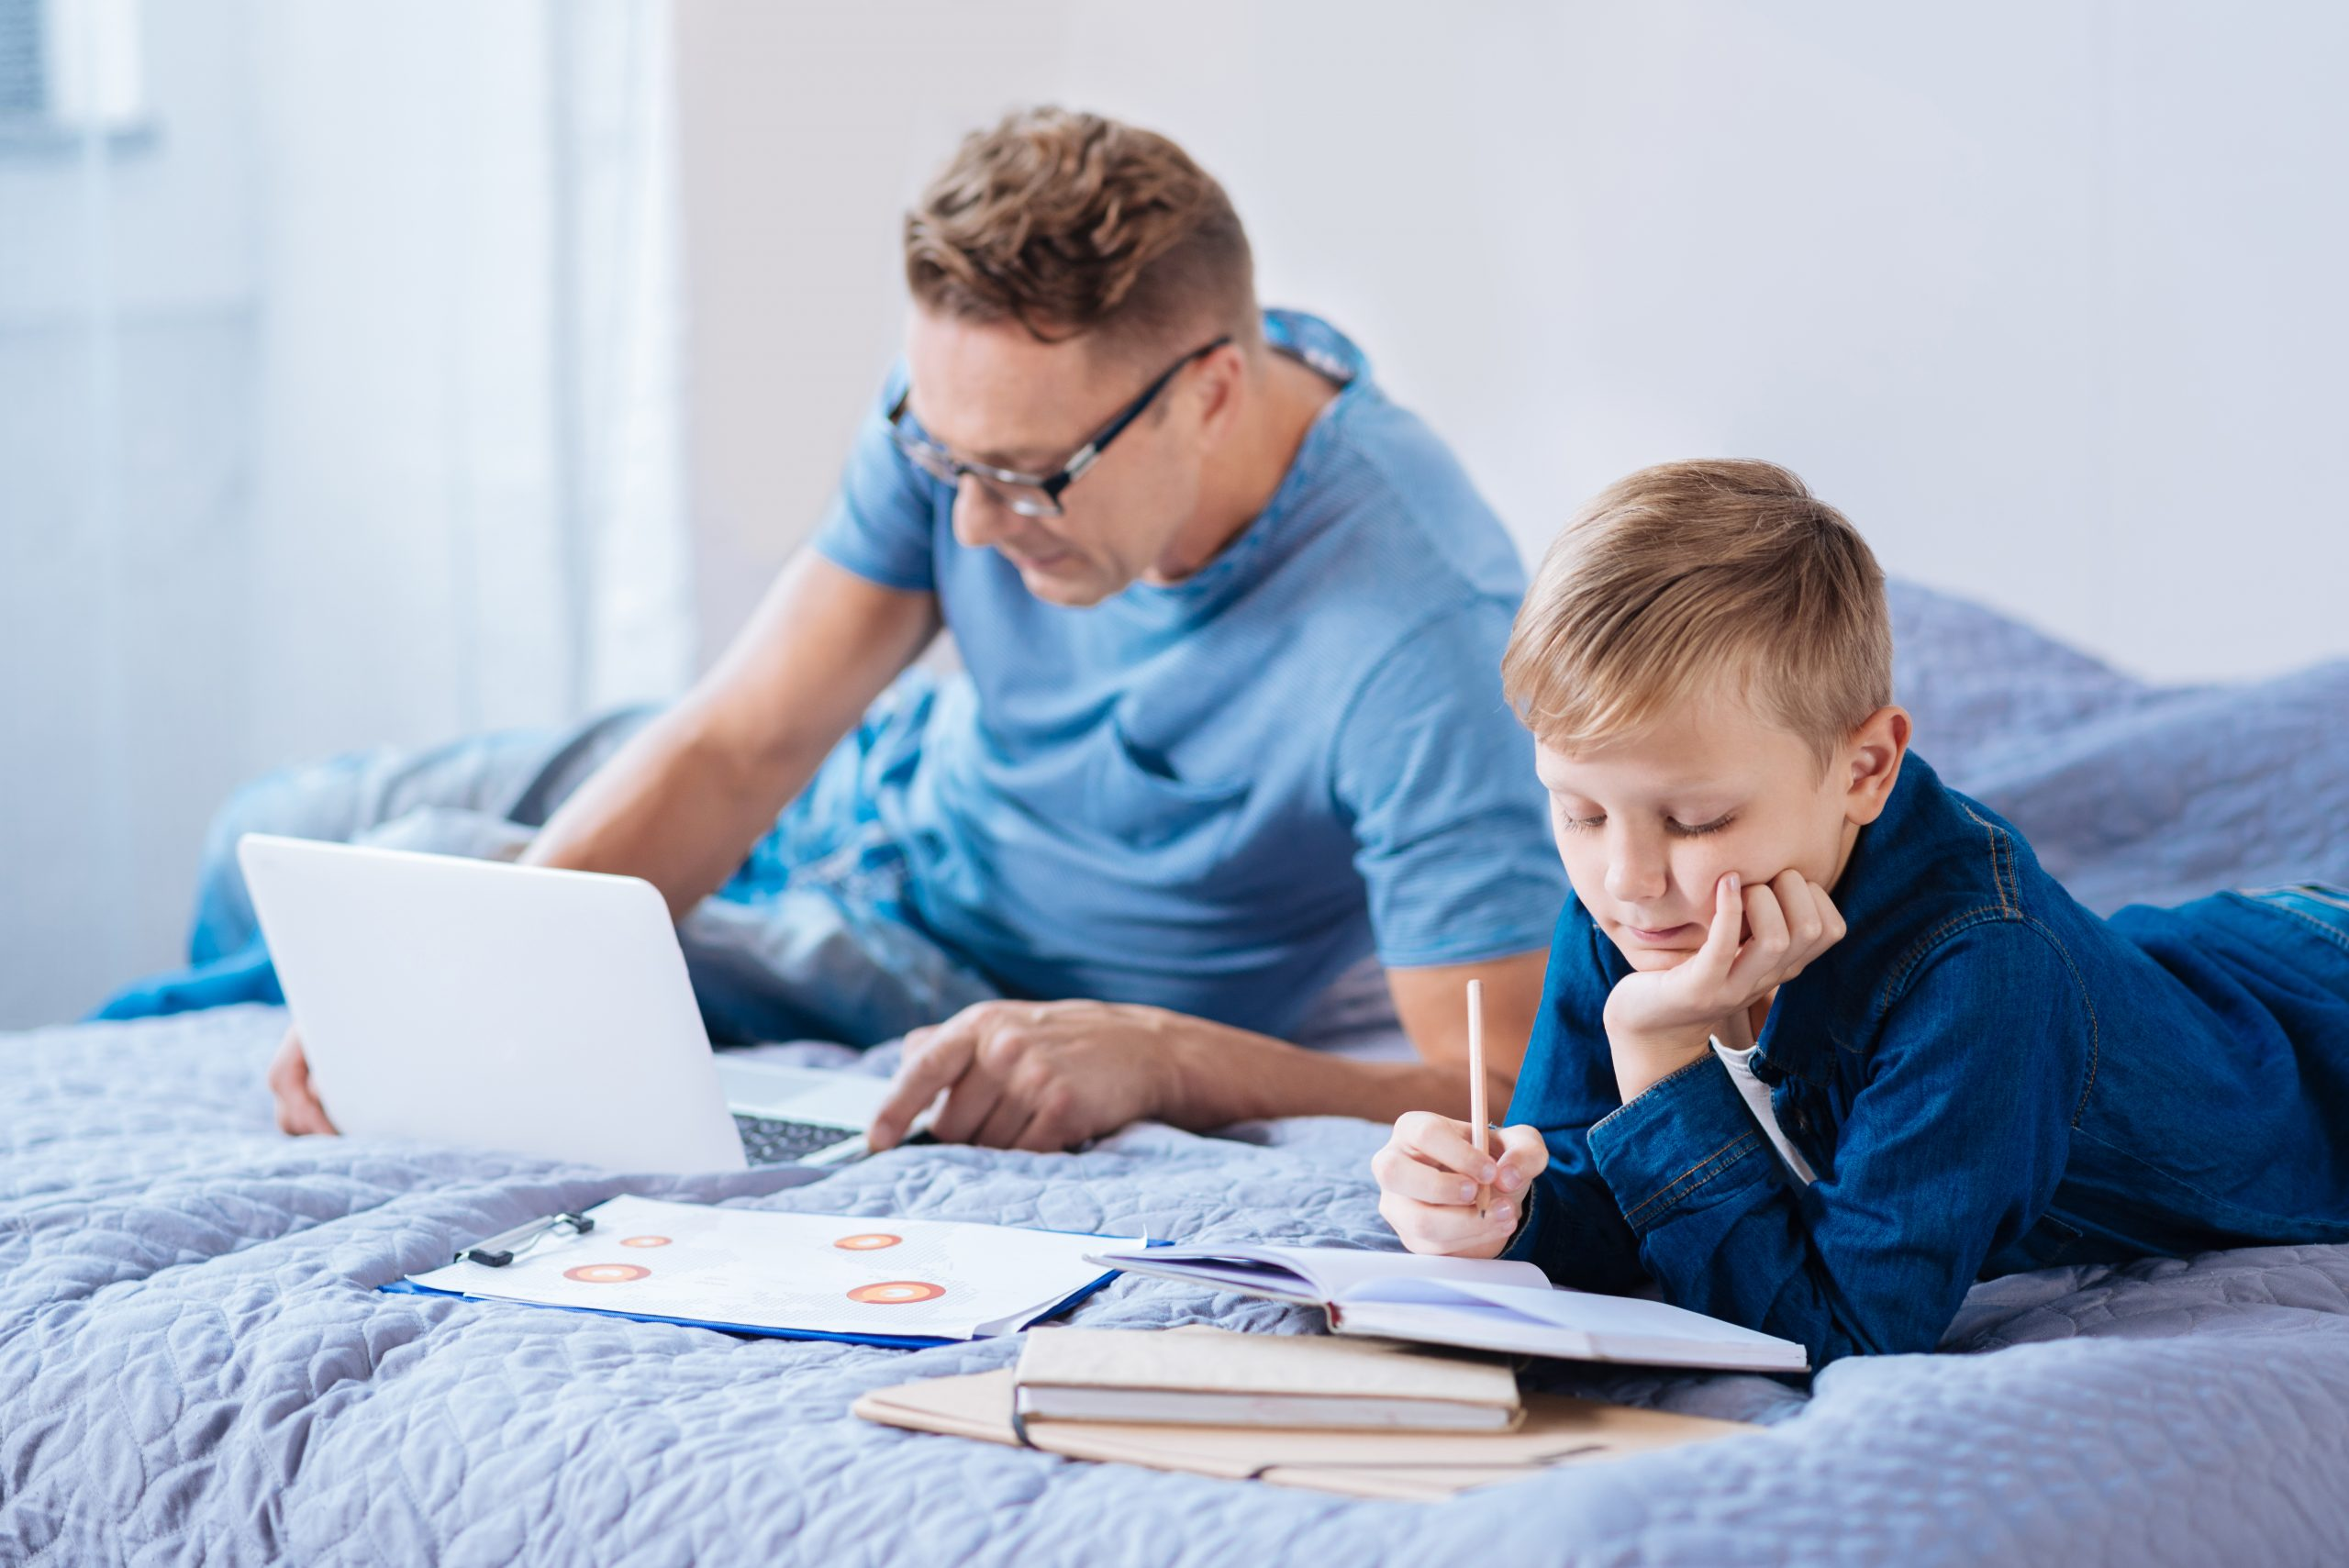 Image of a father being a good role model to his studying son